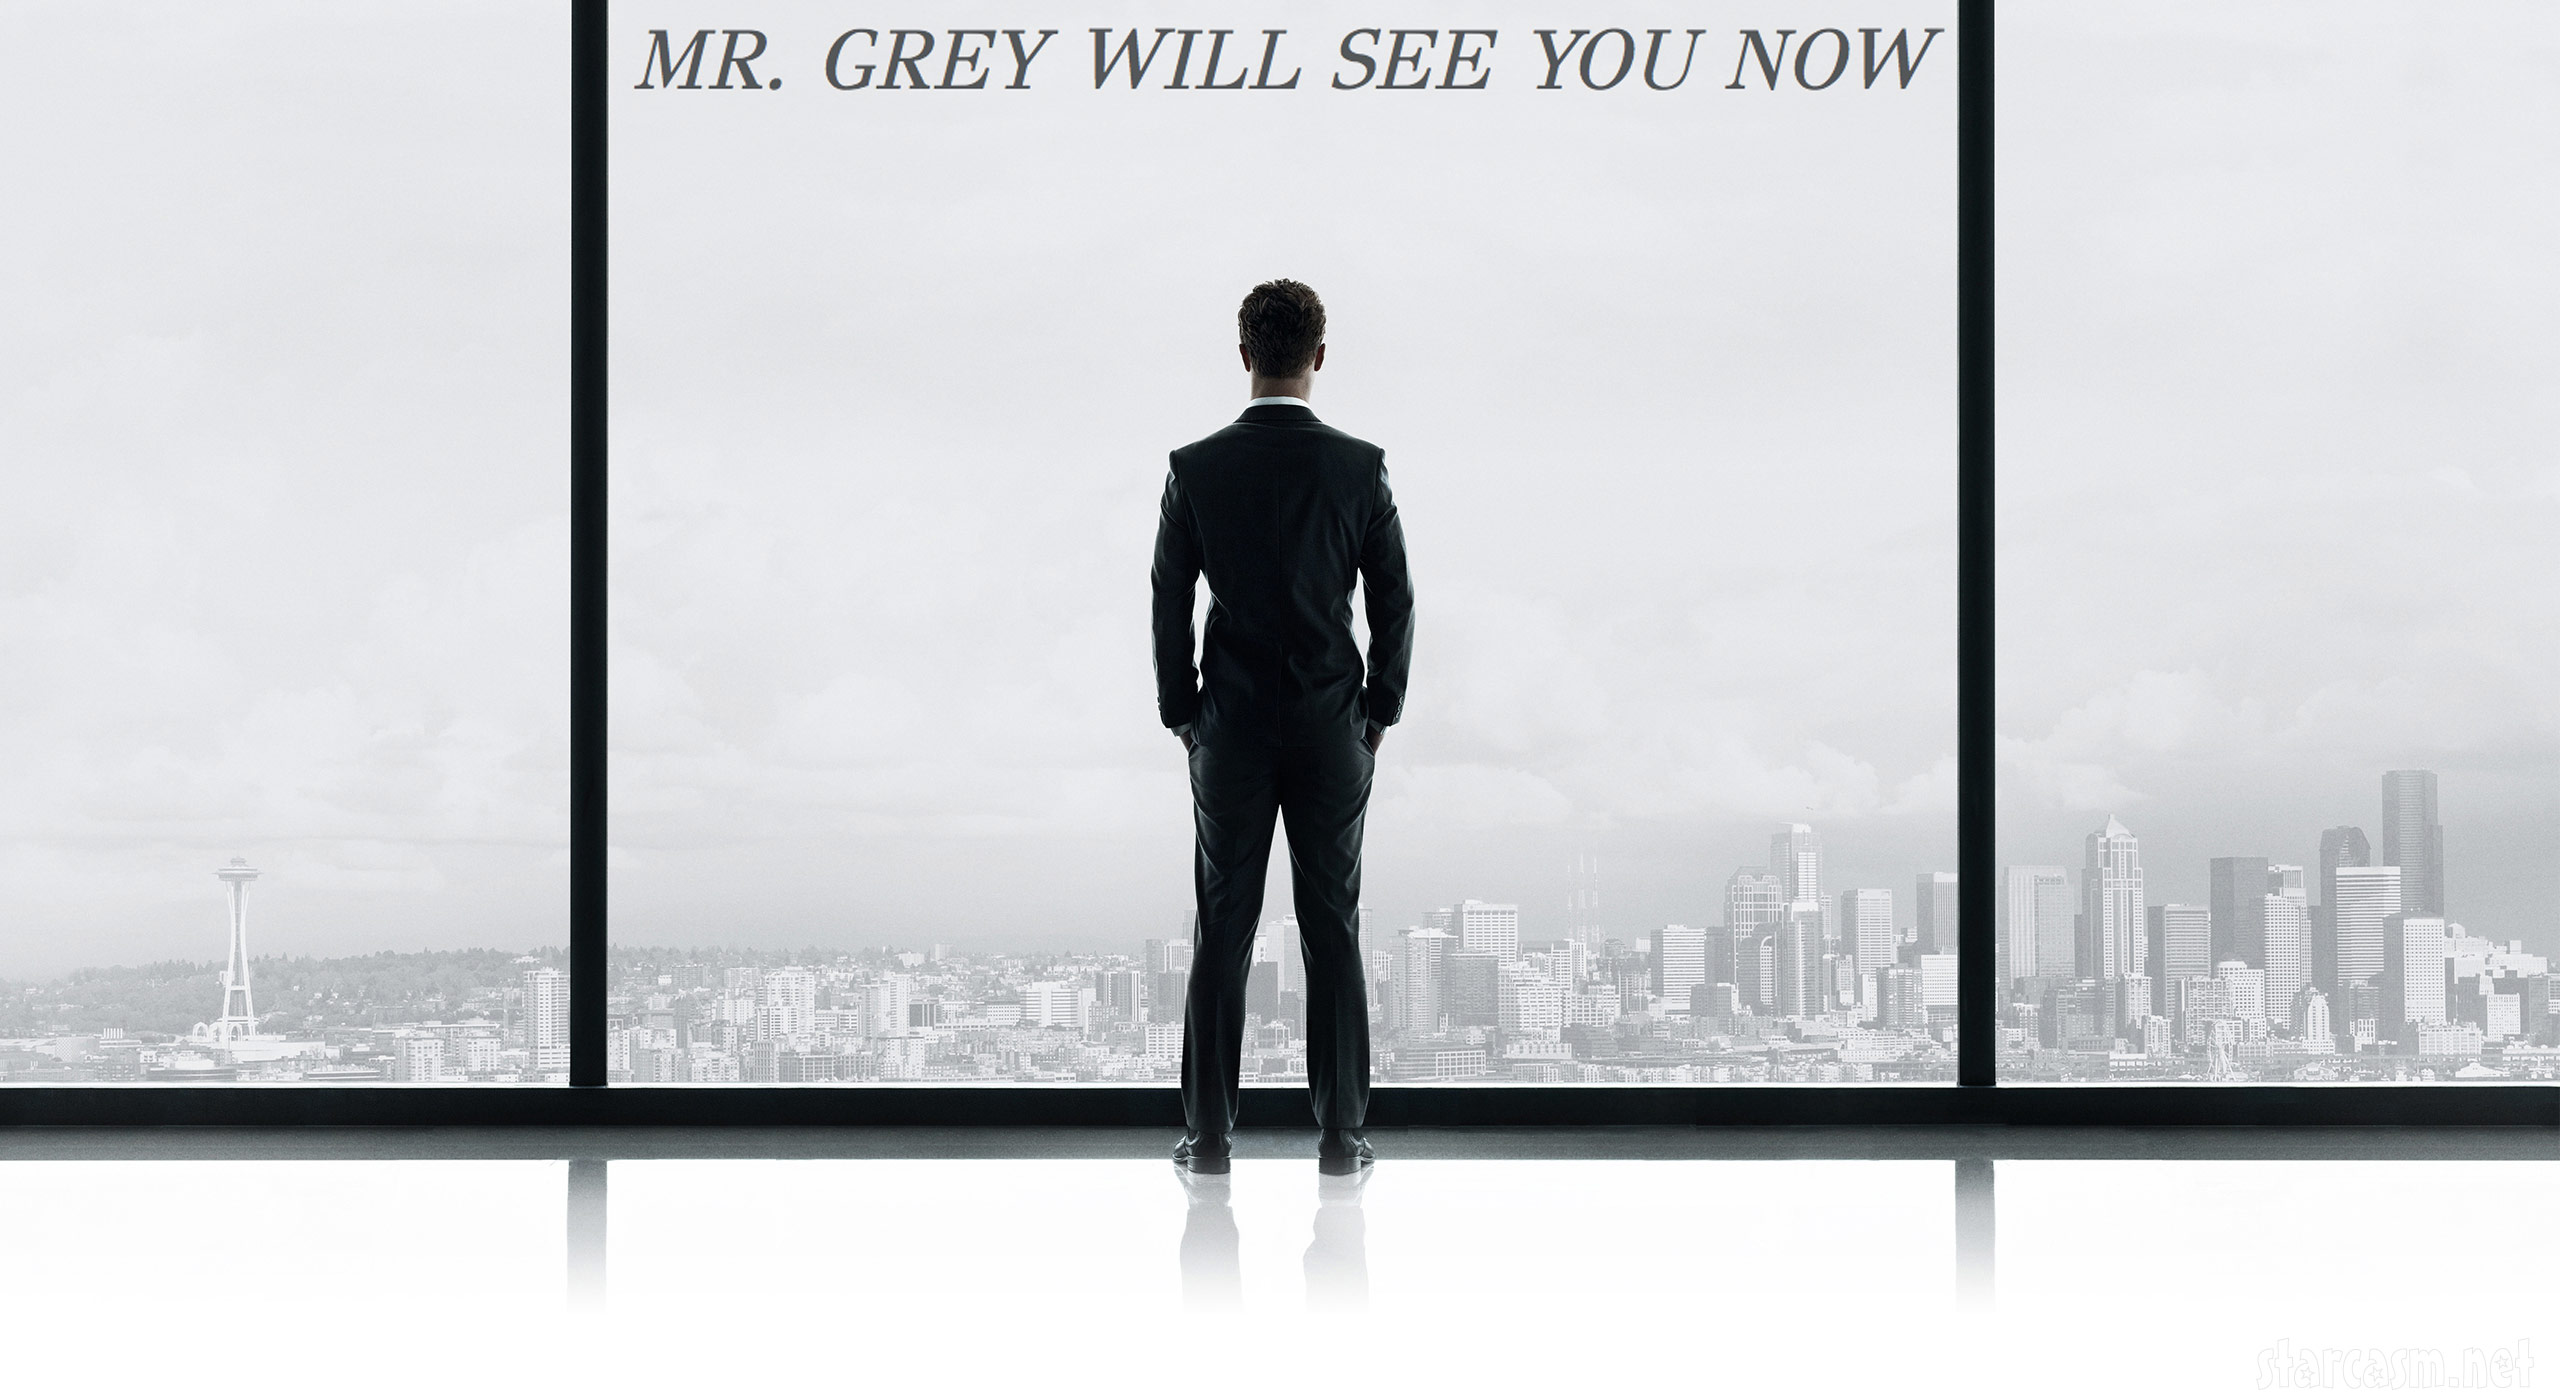 Written review fifty shades of grey 2015 trilbee reviews for The fifty shades of grey